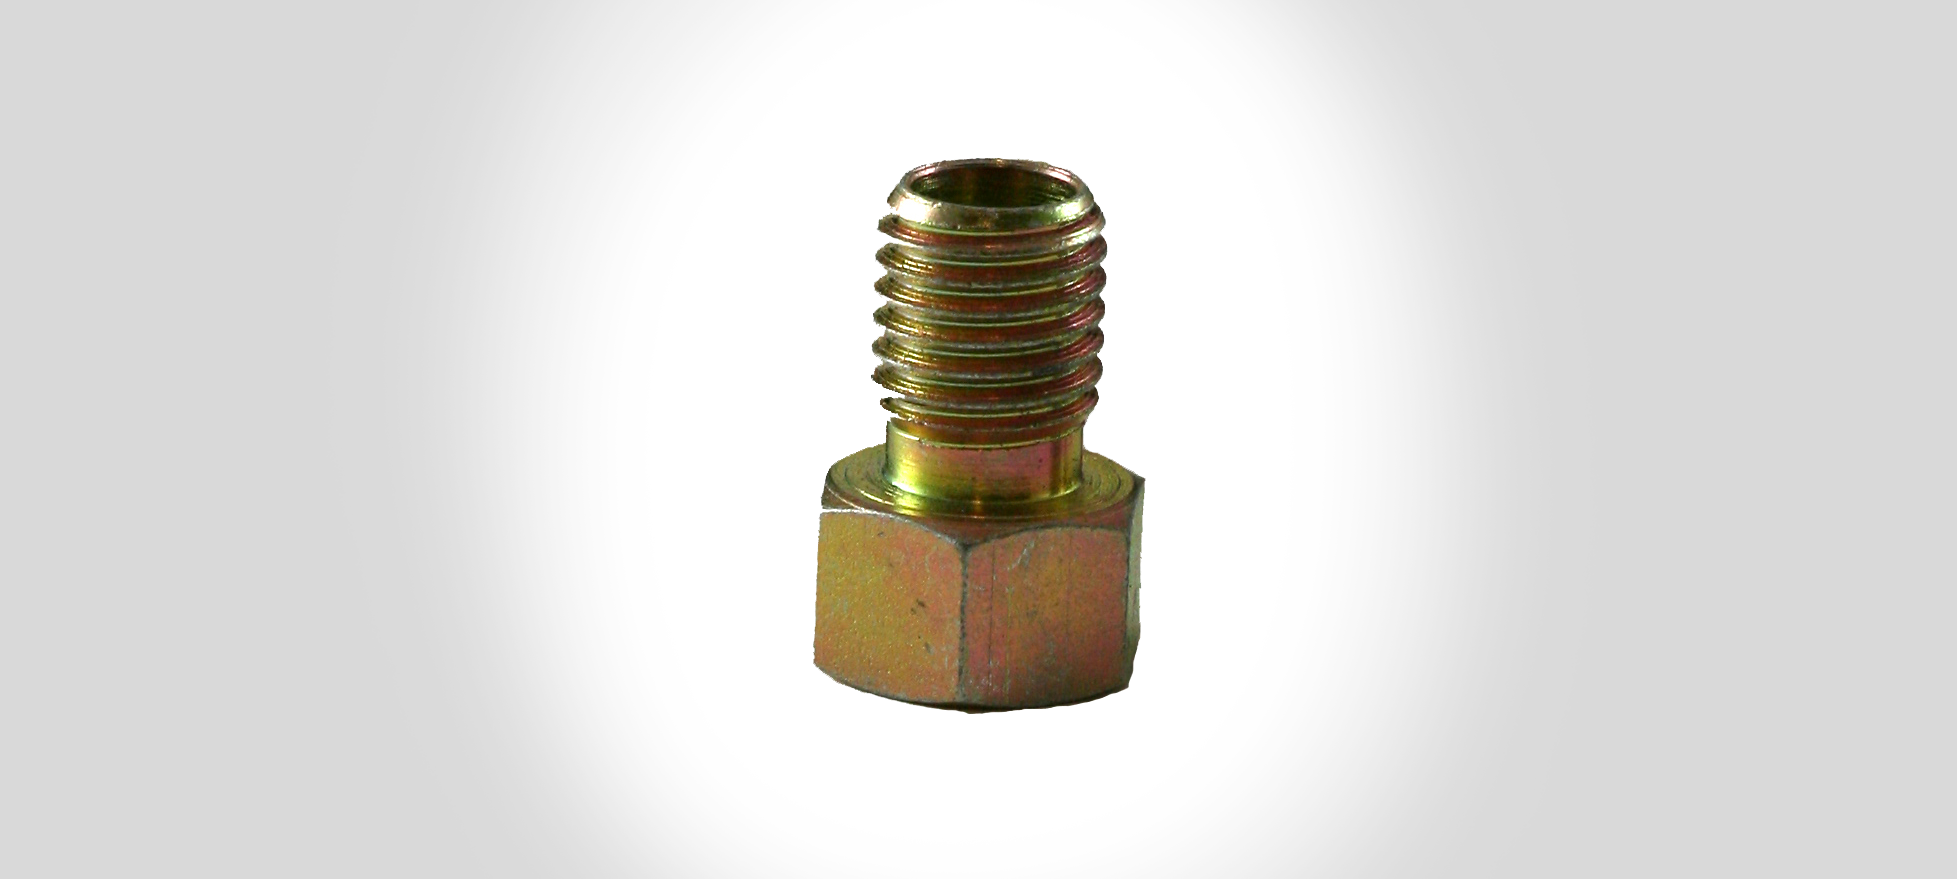 How Huron Automatic Screw Company Overcame Decreased Material Availability